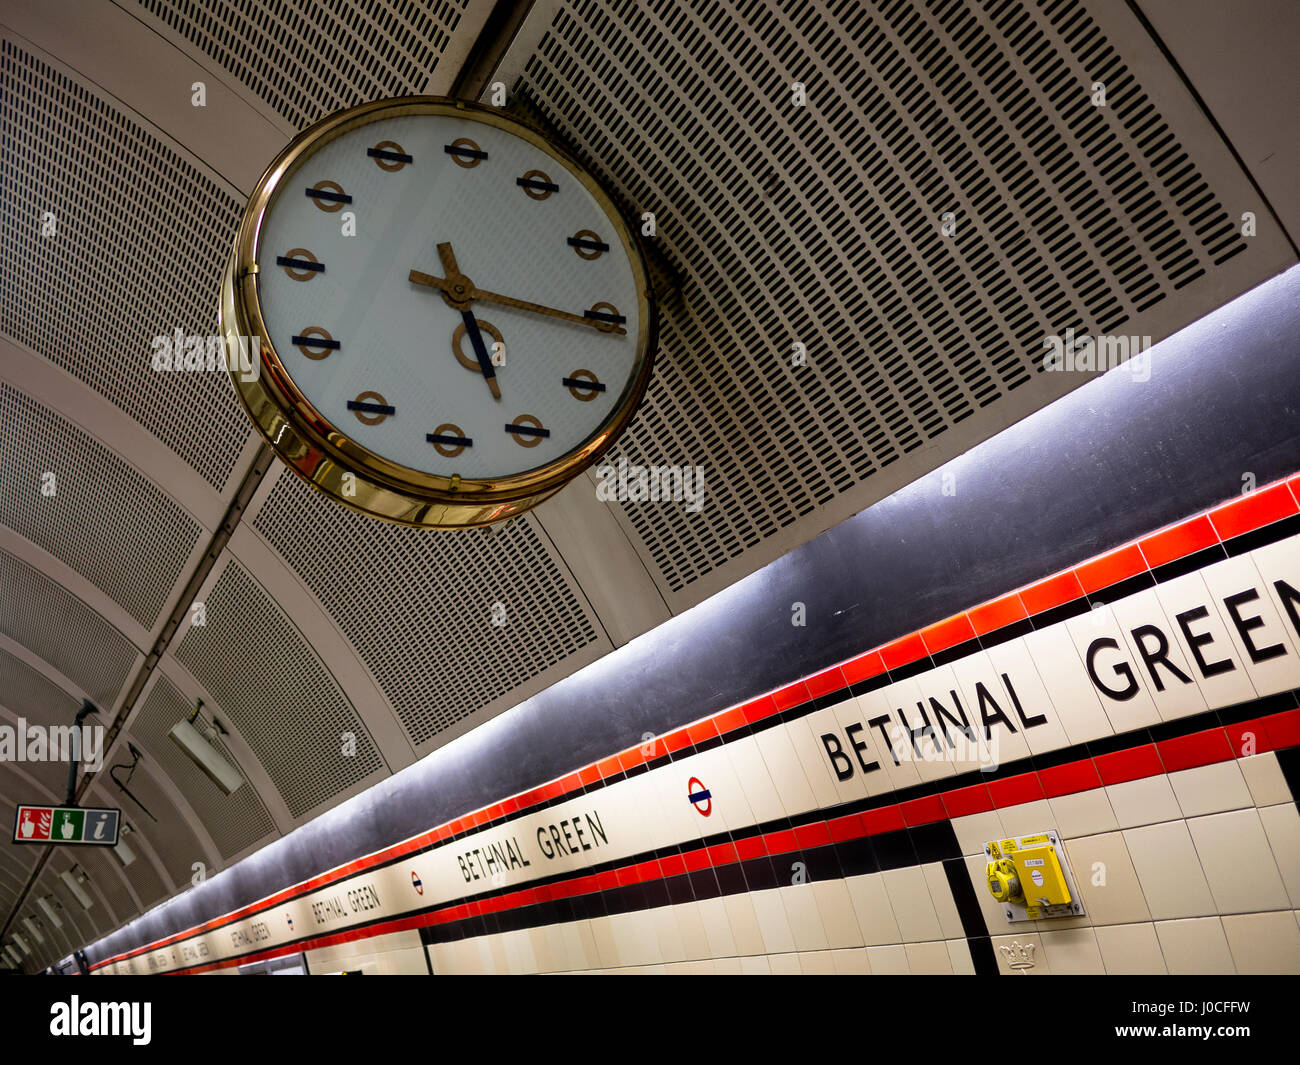 Unusual vintage platform brass clock at Bethnal Green London Underground station in the East End of London - Stock Image